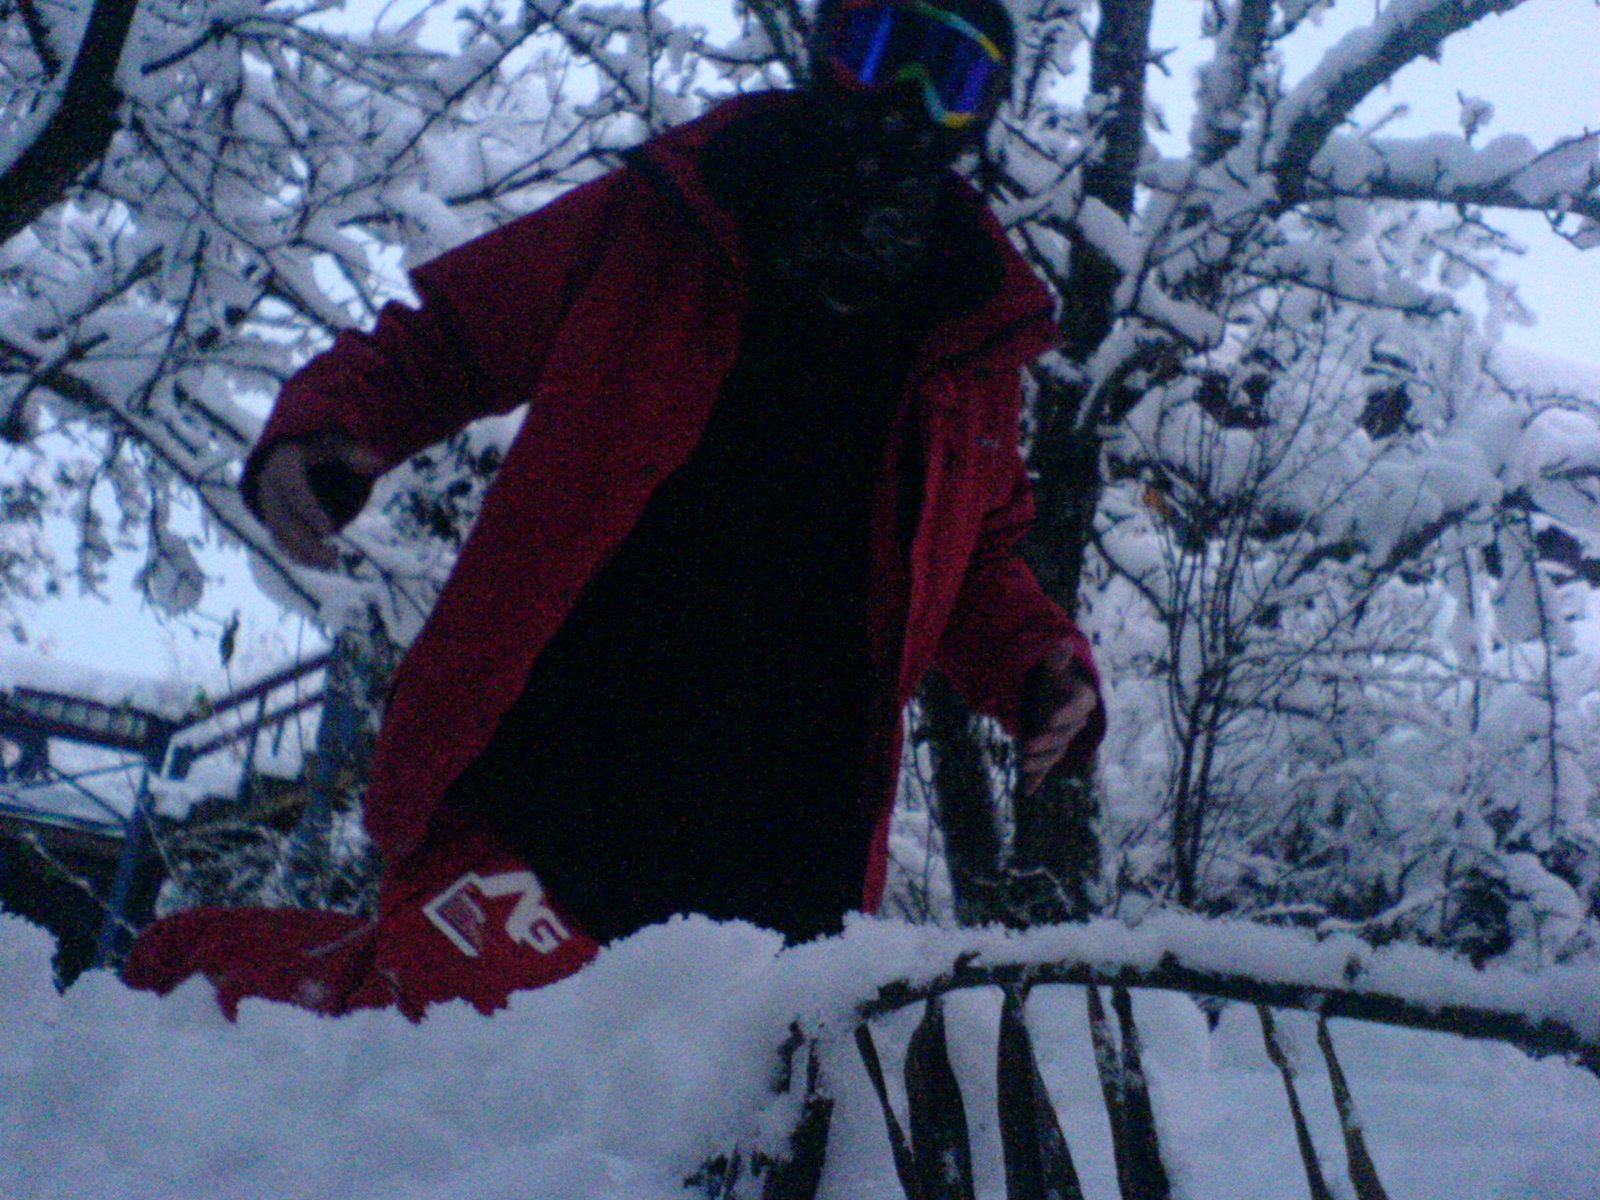 Me playying in the snow